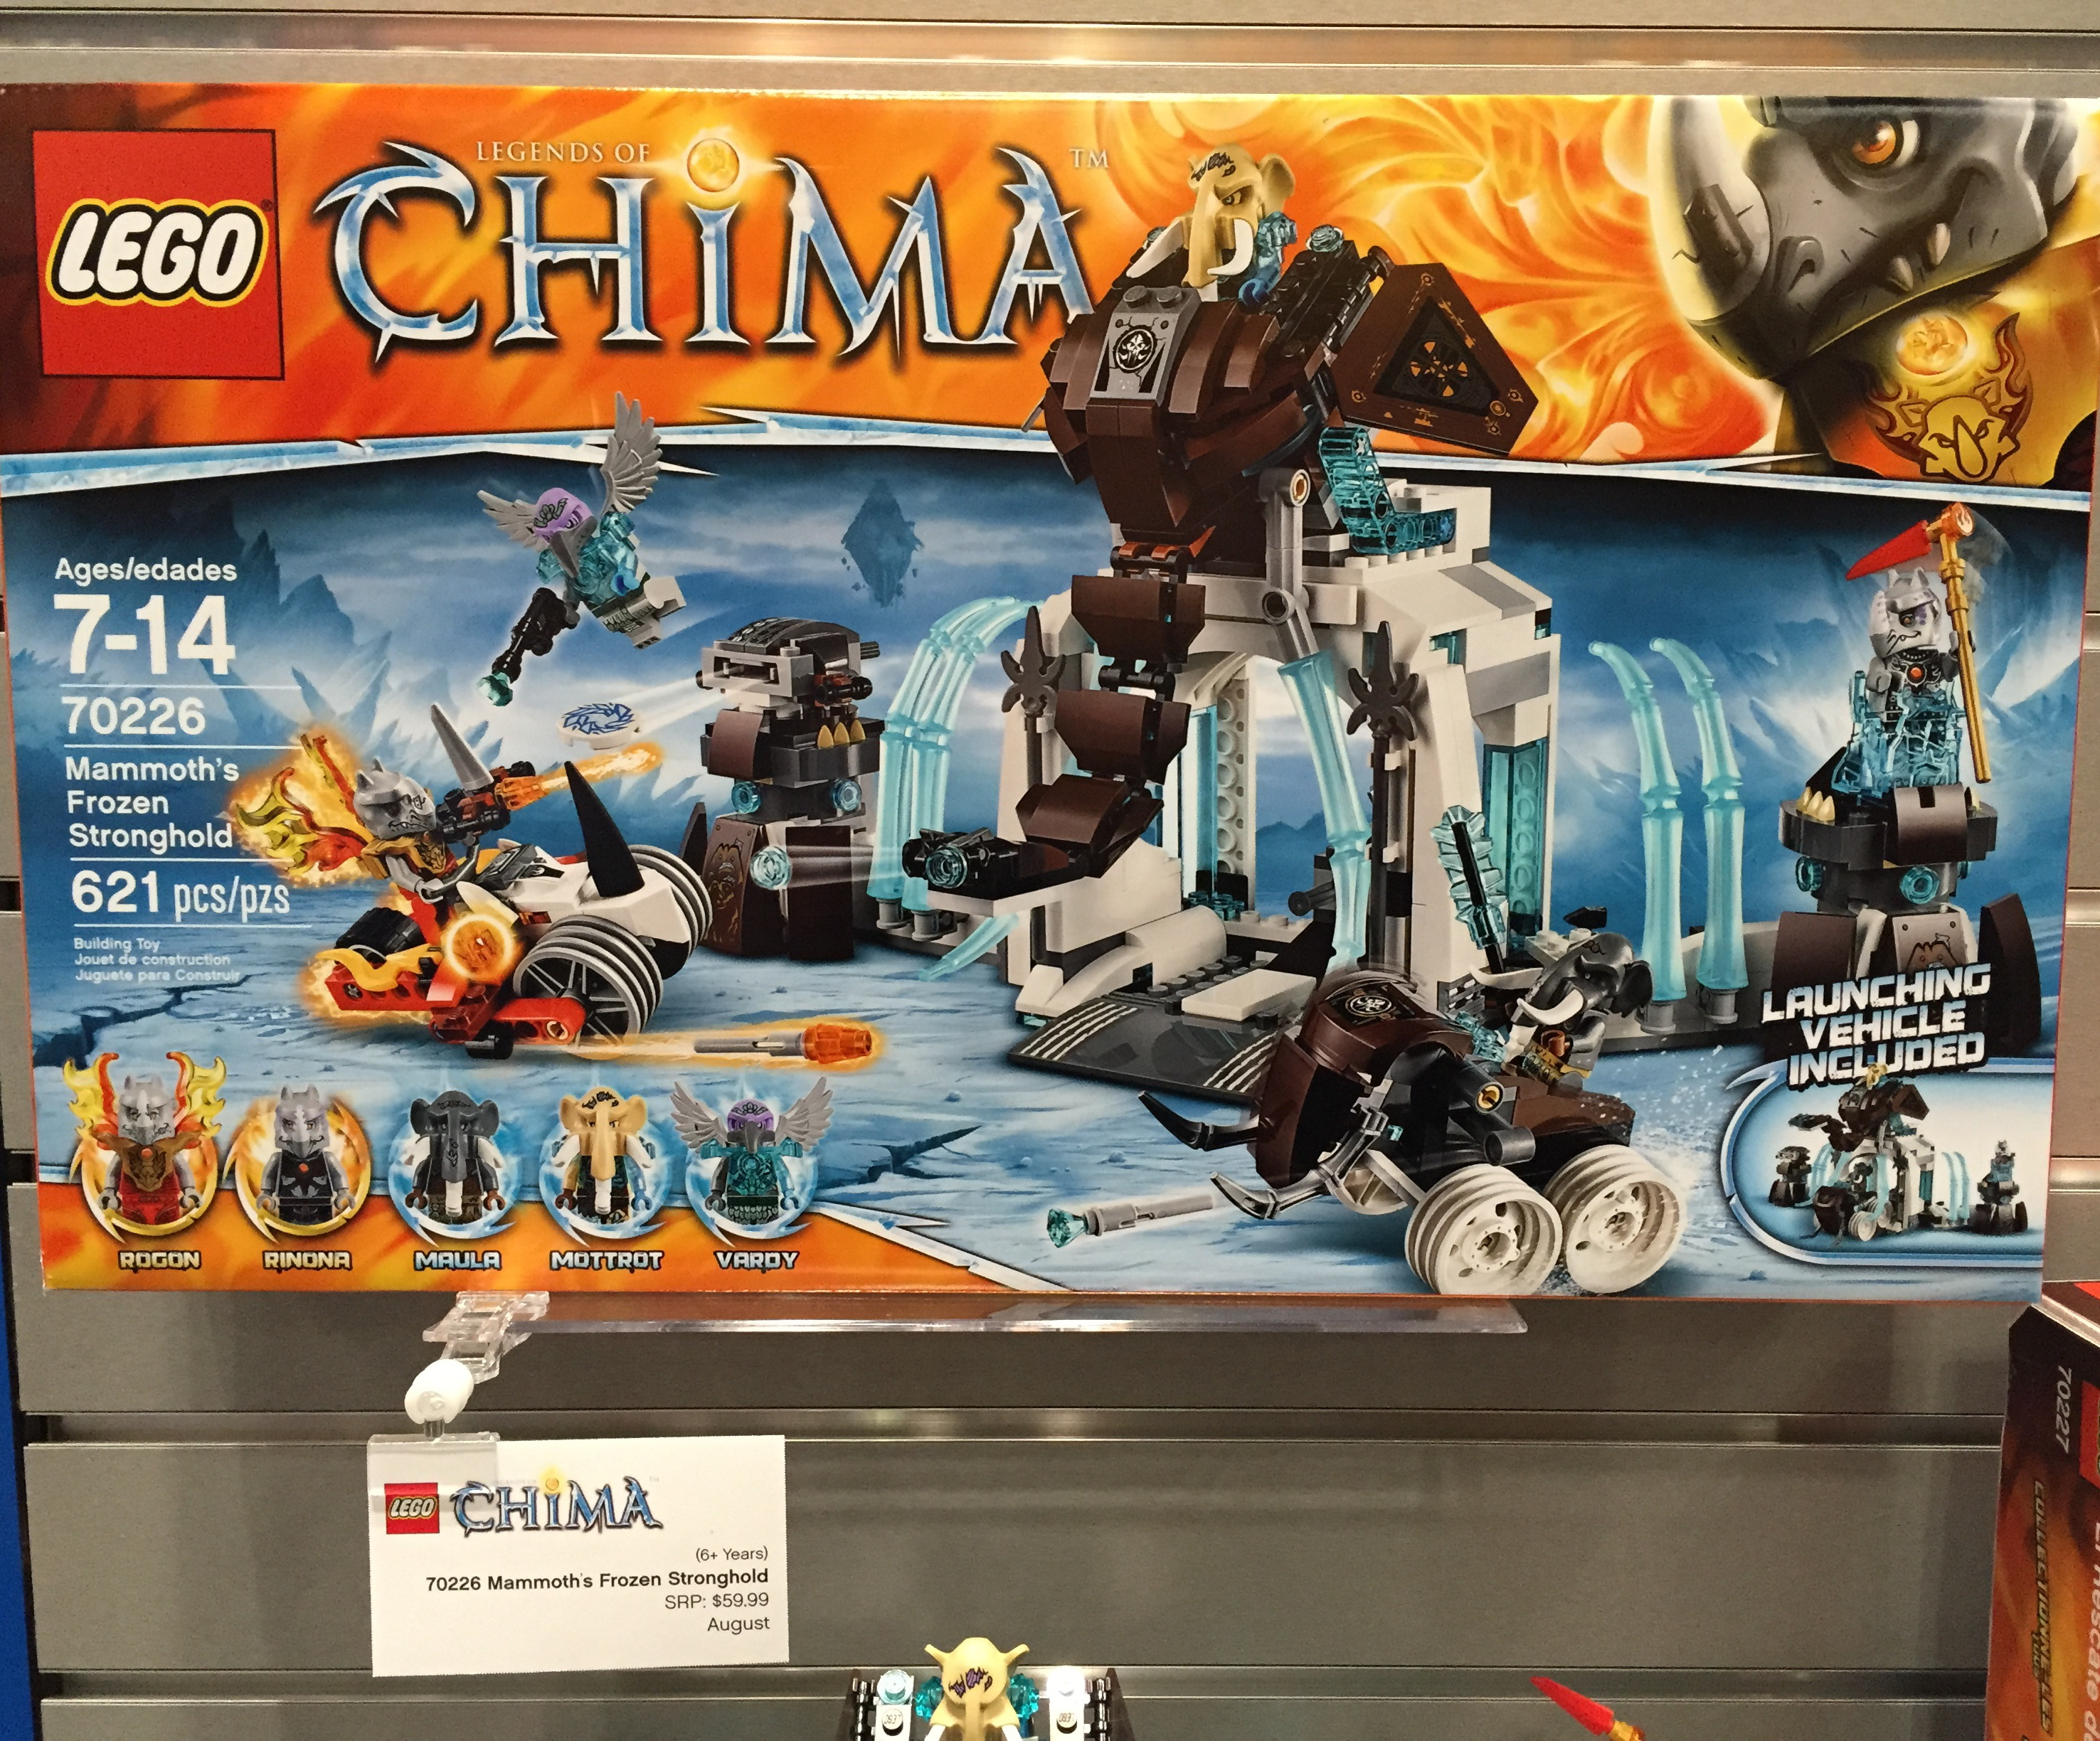 LEGO Chima Mammoth's Frozen Stronghold Summer 2015 Set